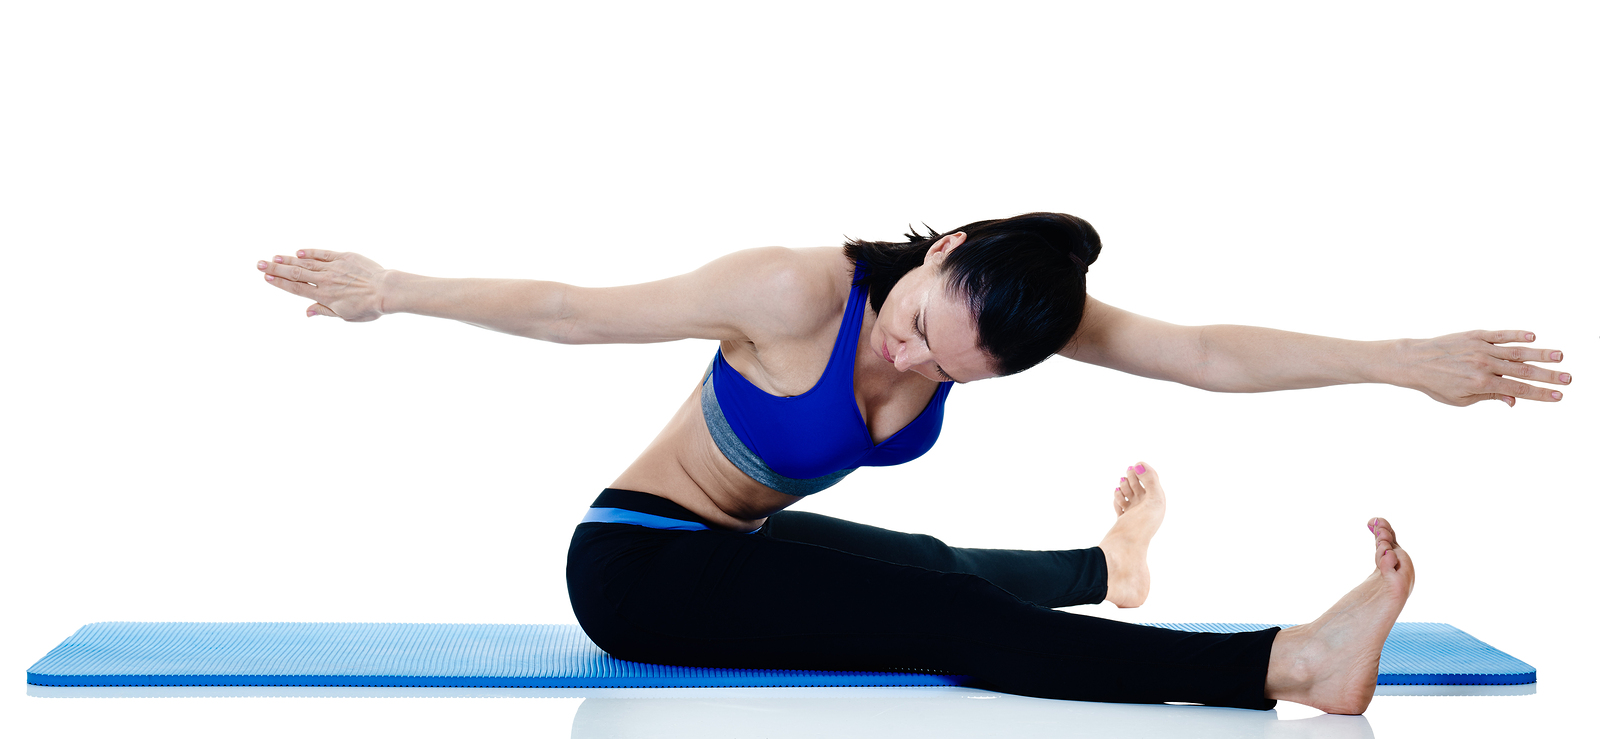 Effects of Pilates and yoga in patients with chronic neck pain: A sonographic study